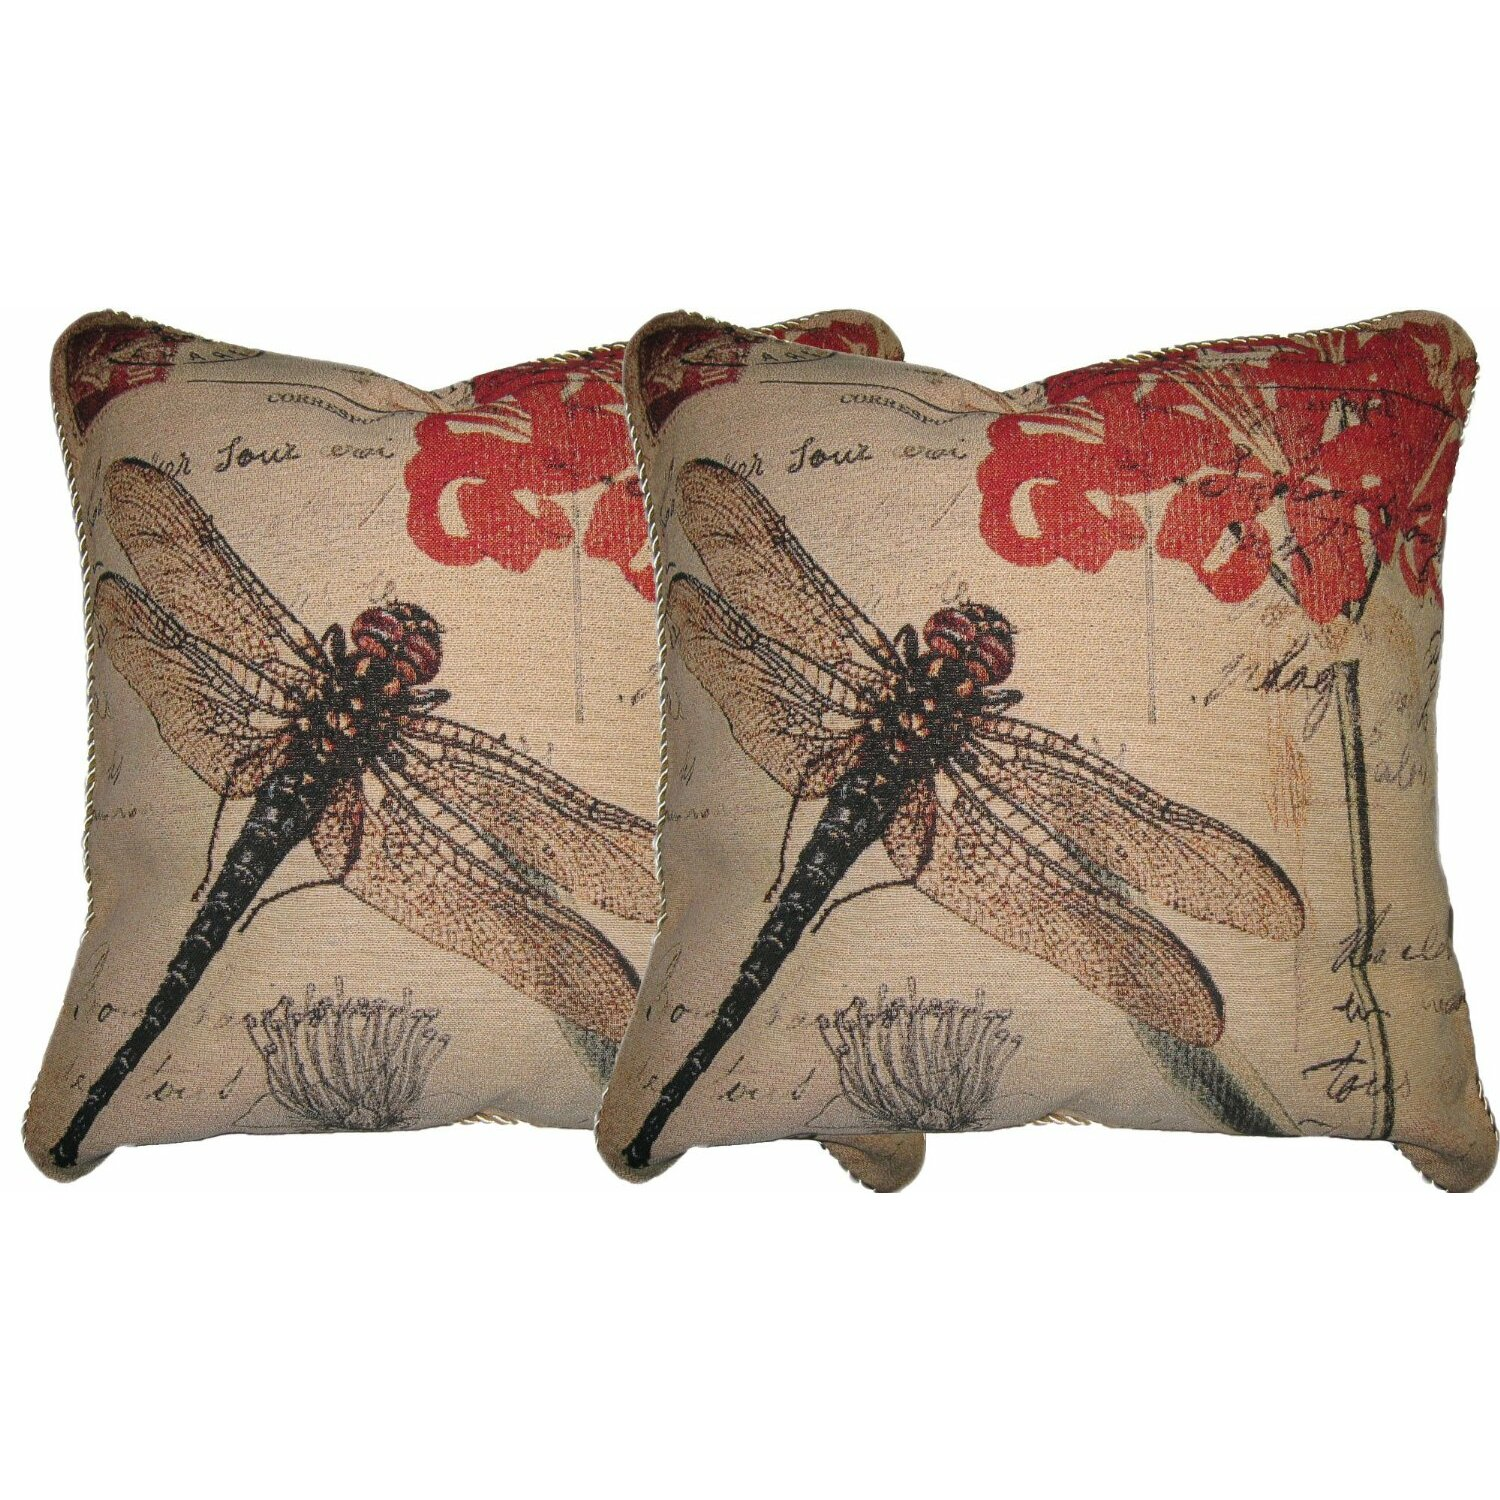 Dragonfly bathroom decor - Dragonfly Bathroom Decor Sets Bathroom Design King Of Prussi Picture On Dragonfly Dream Woven Pillow Cover